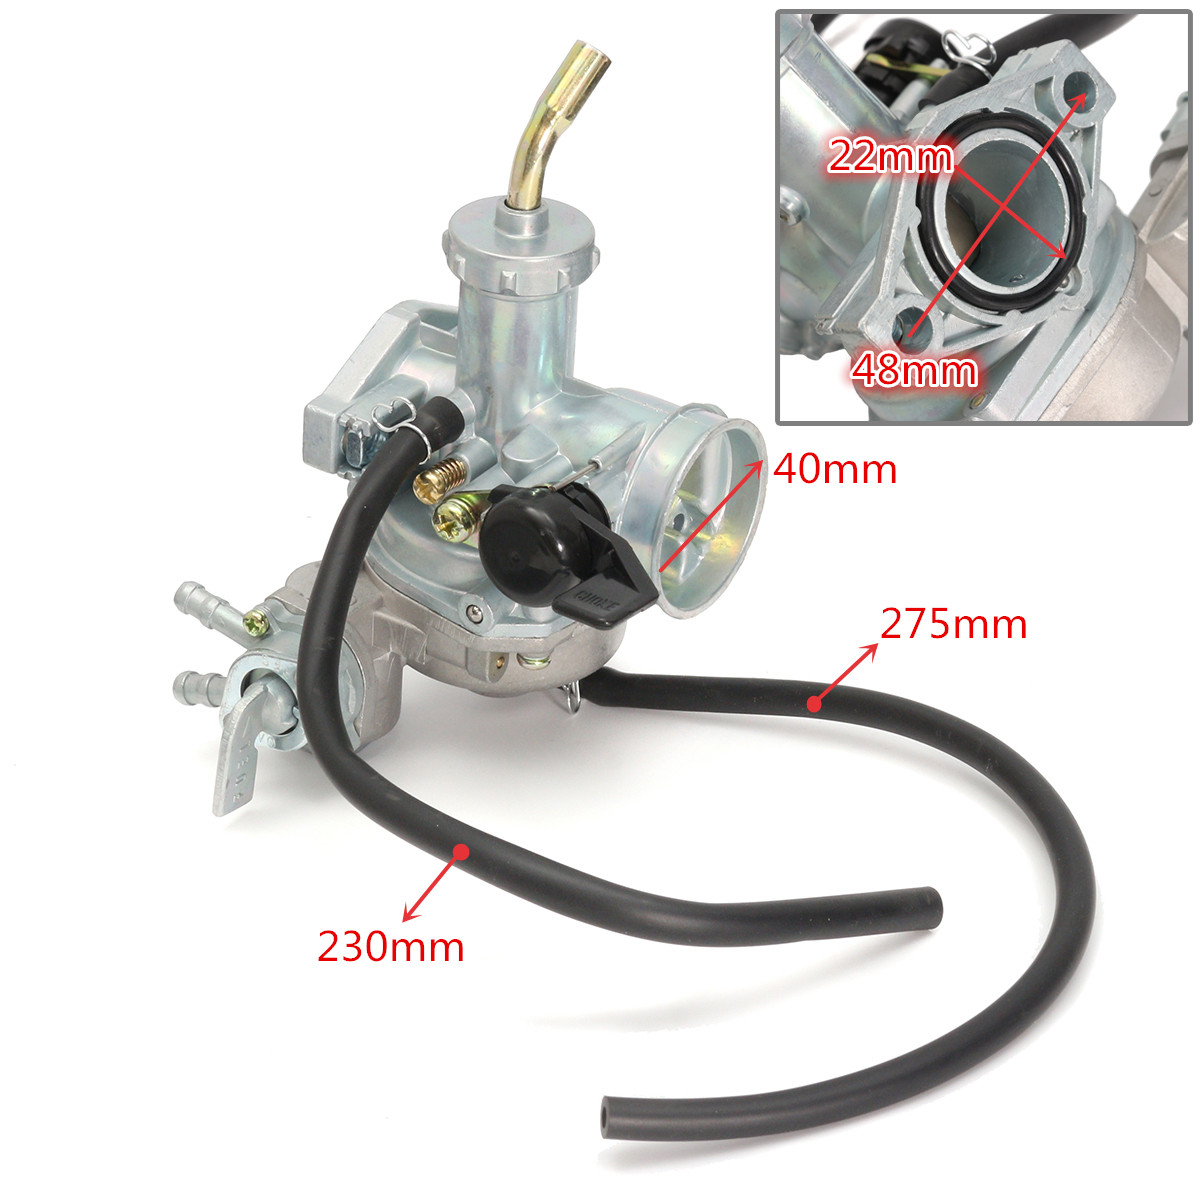 Carb Carburetor & Throttle Cable For Honda ATV ATC 70 <font><b>90</b></font> 110 125 TRX125 C02220 image